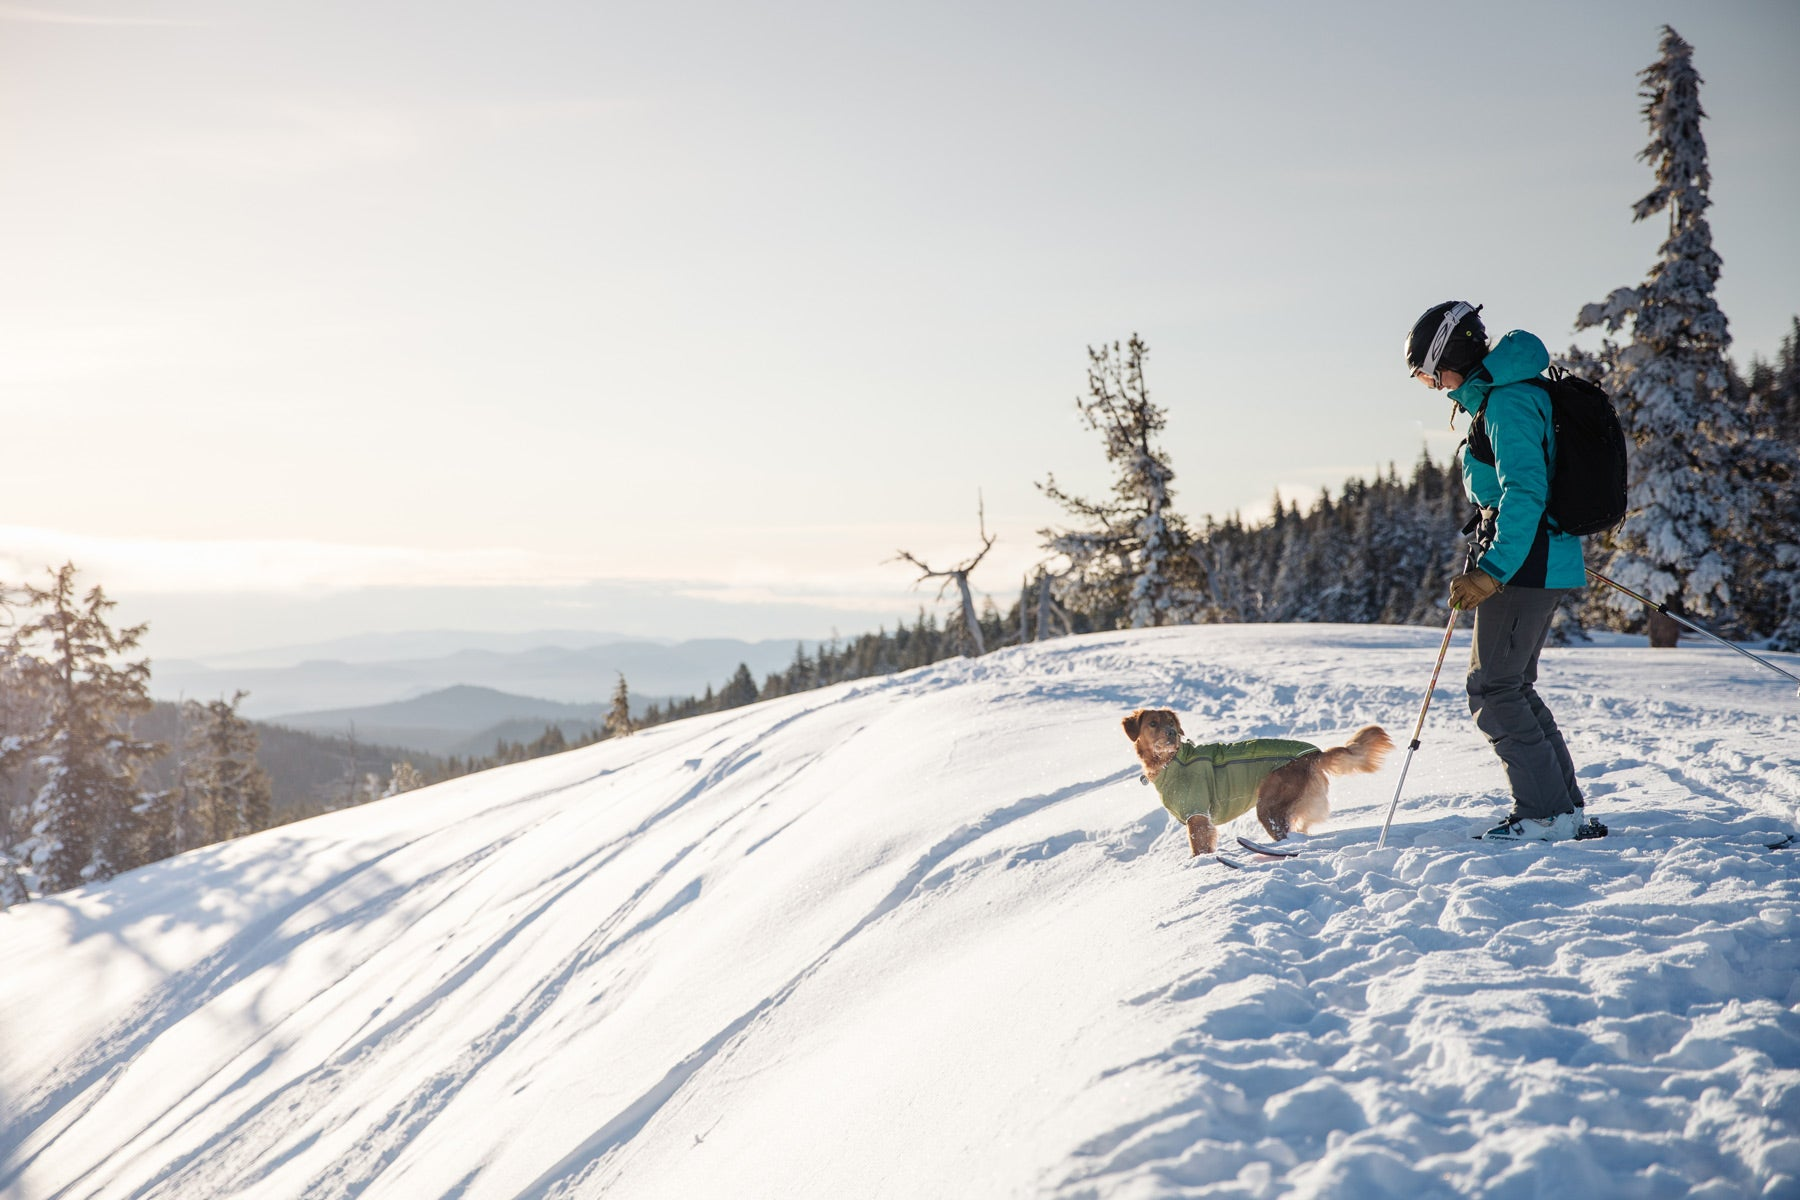 Elise and her pup Bailey (in powder hound) at the top of a ski slope ready to drop in.